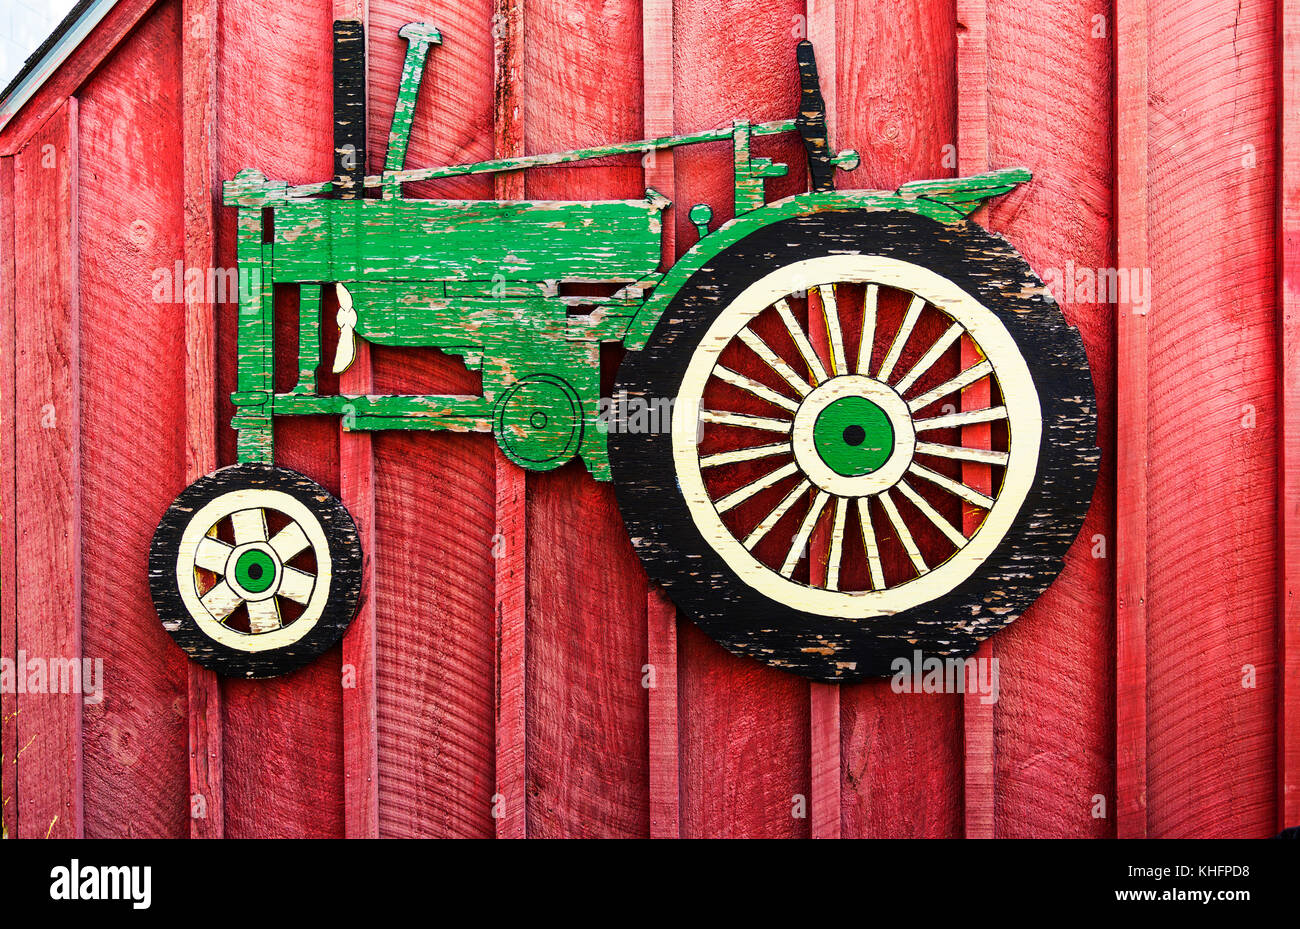 Tractor Art Stock Photos & Tractor Art Stock Images - Alamy